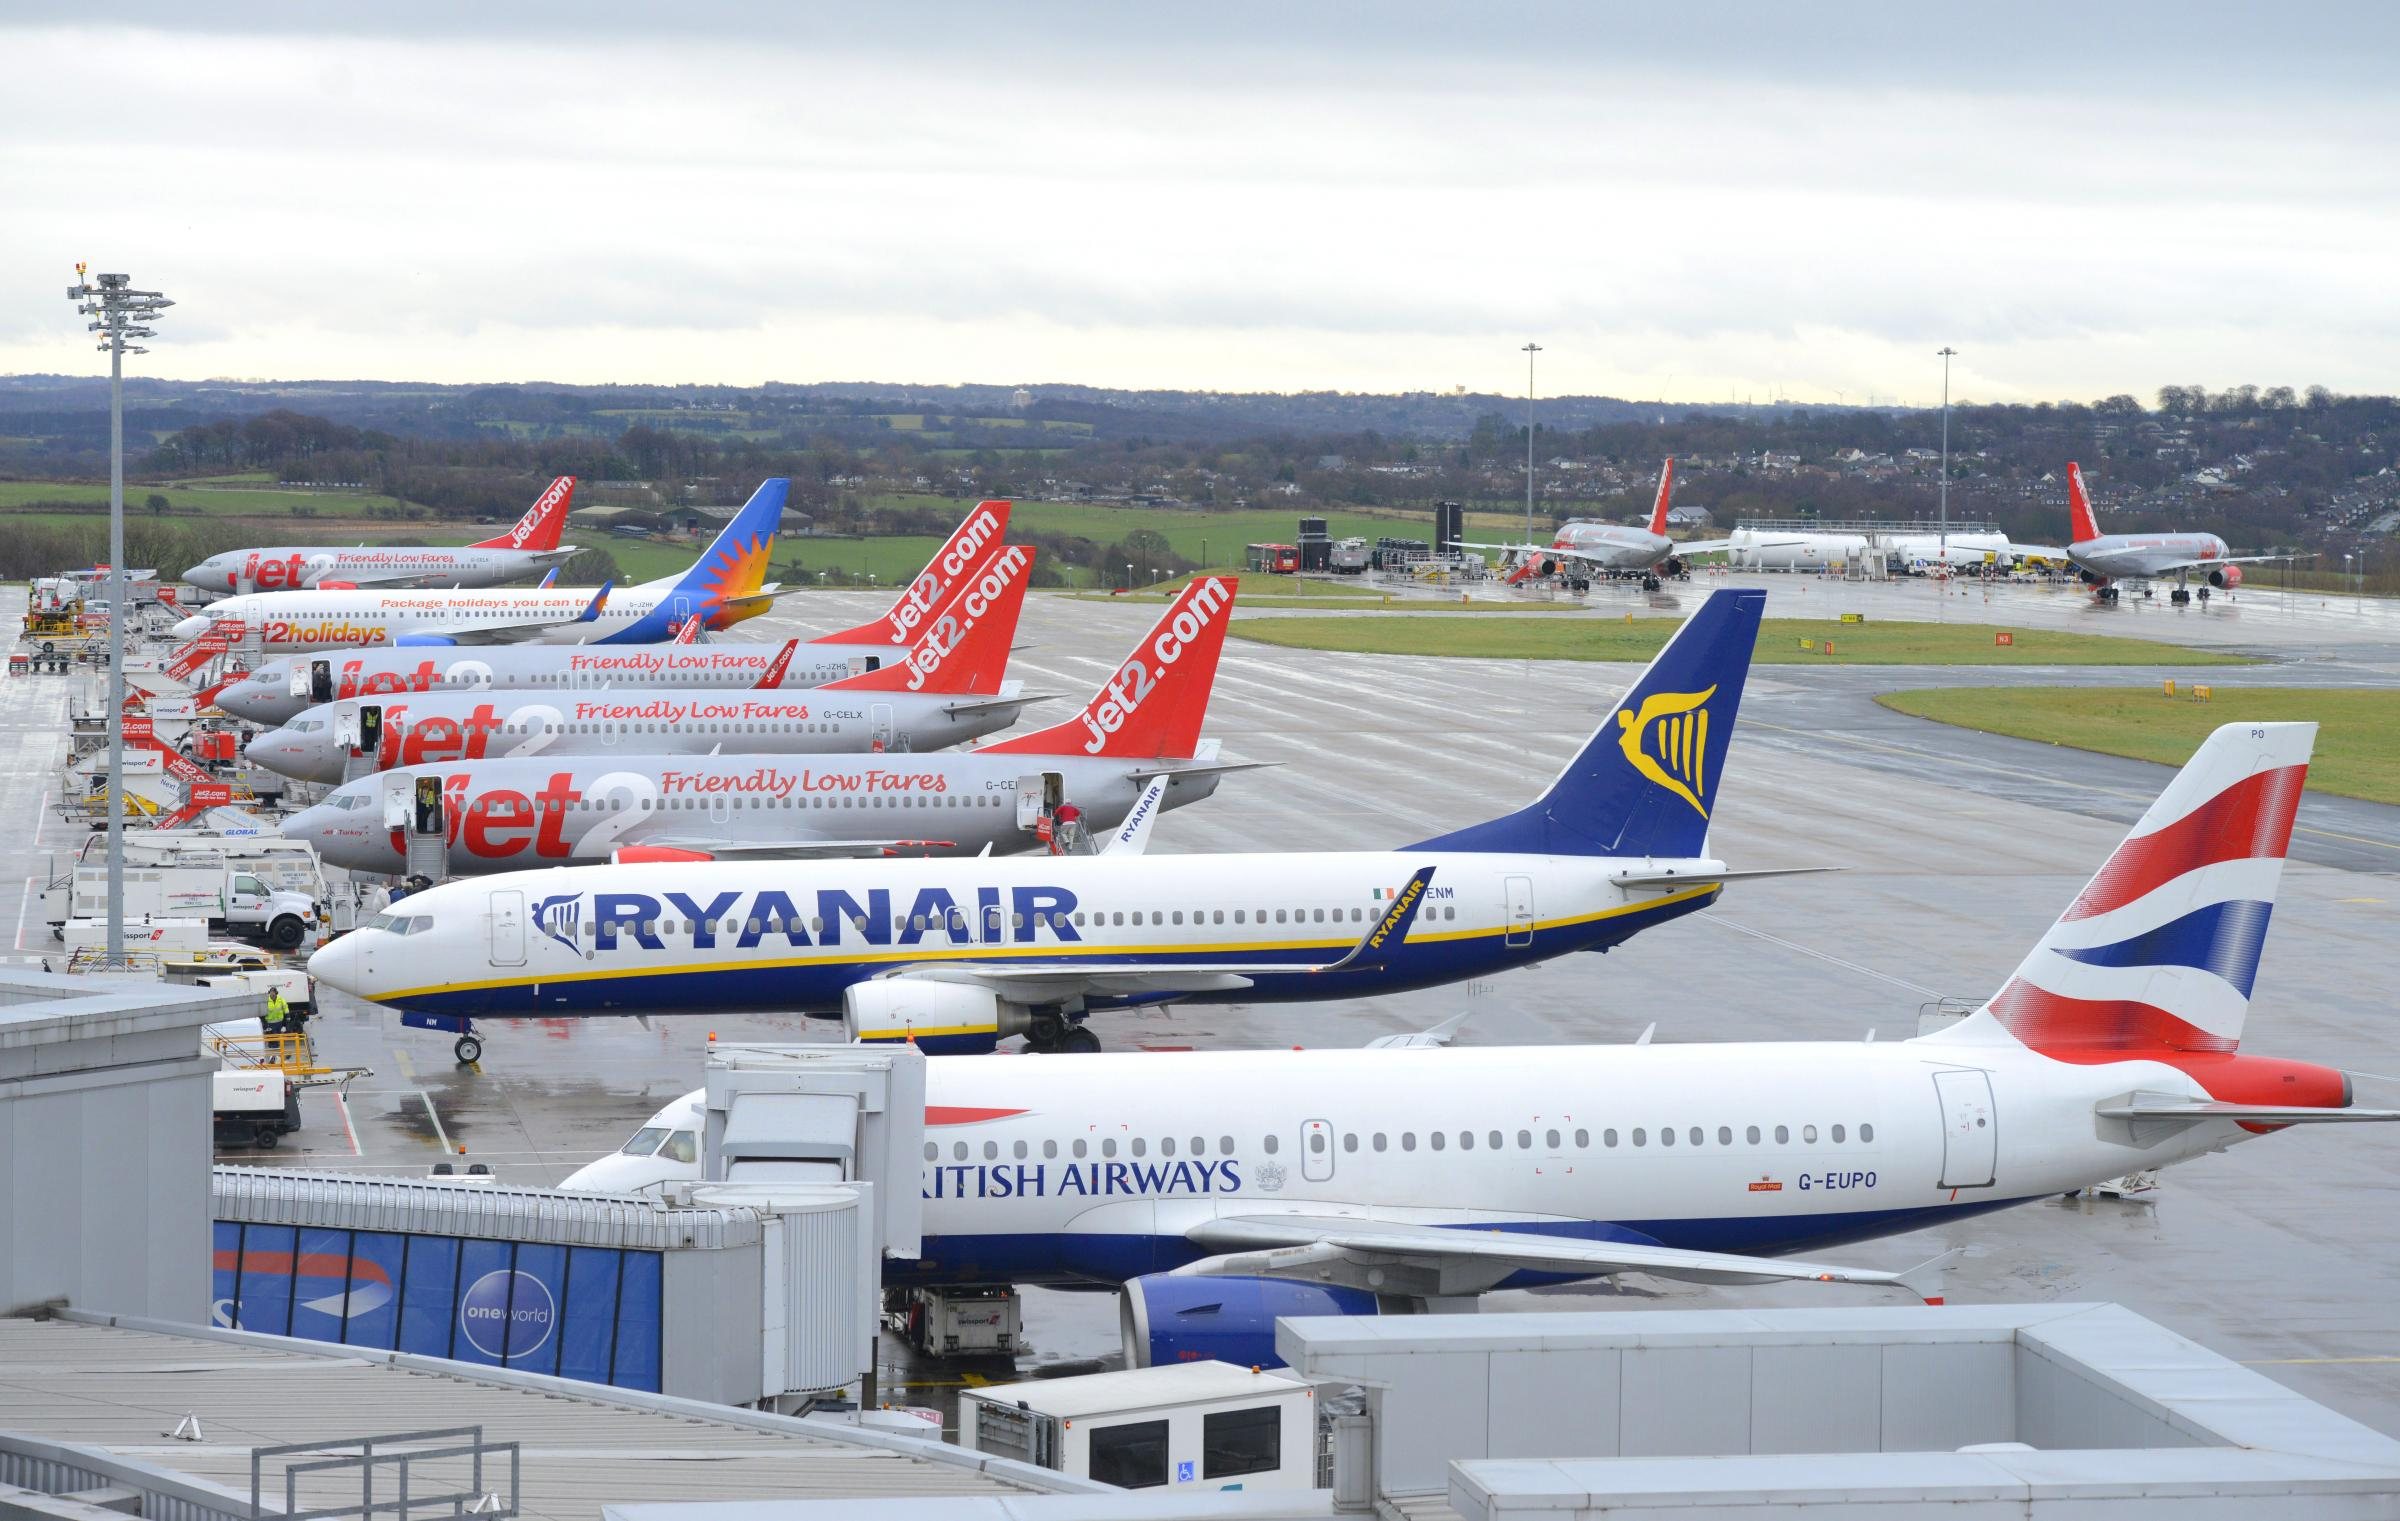 DEMAND: Leeds Bradford Airport has revealed record passenger numbers